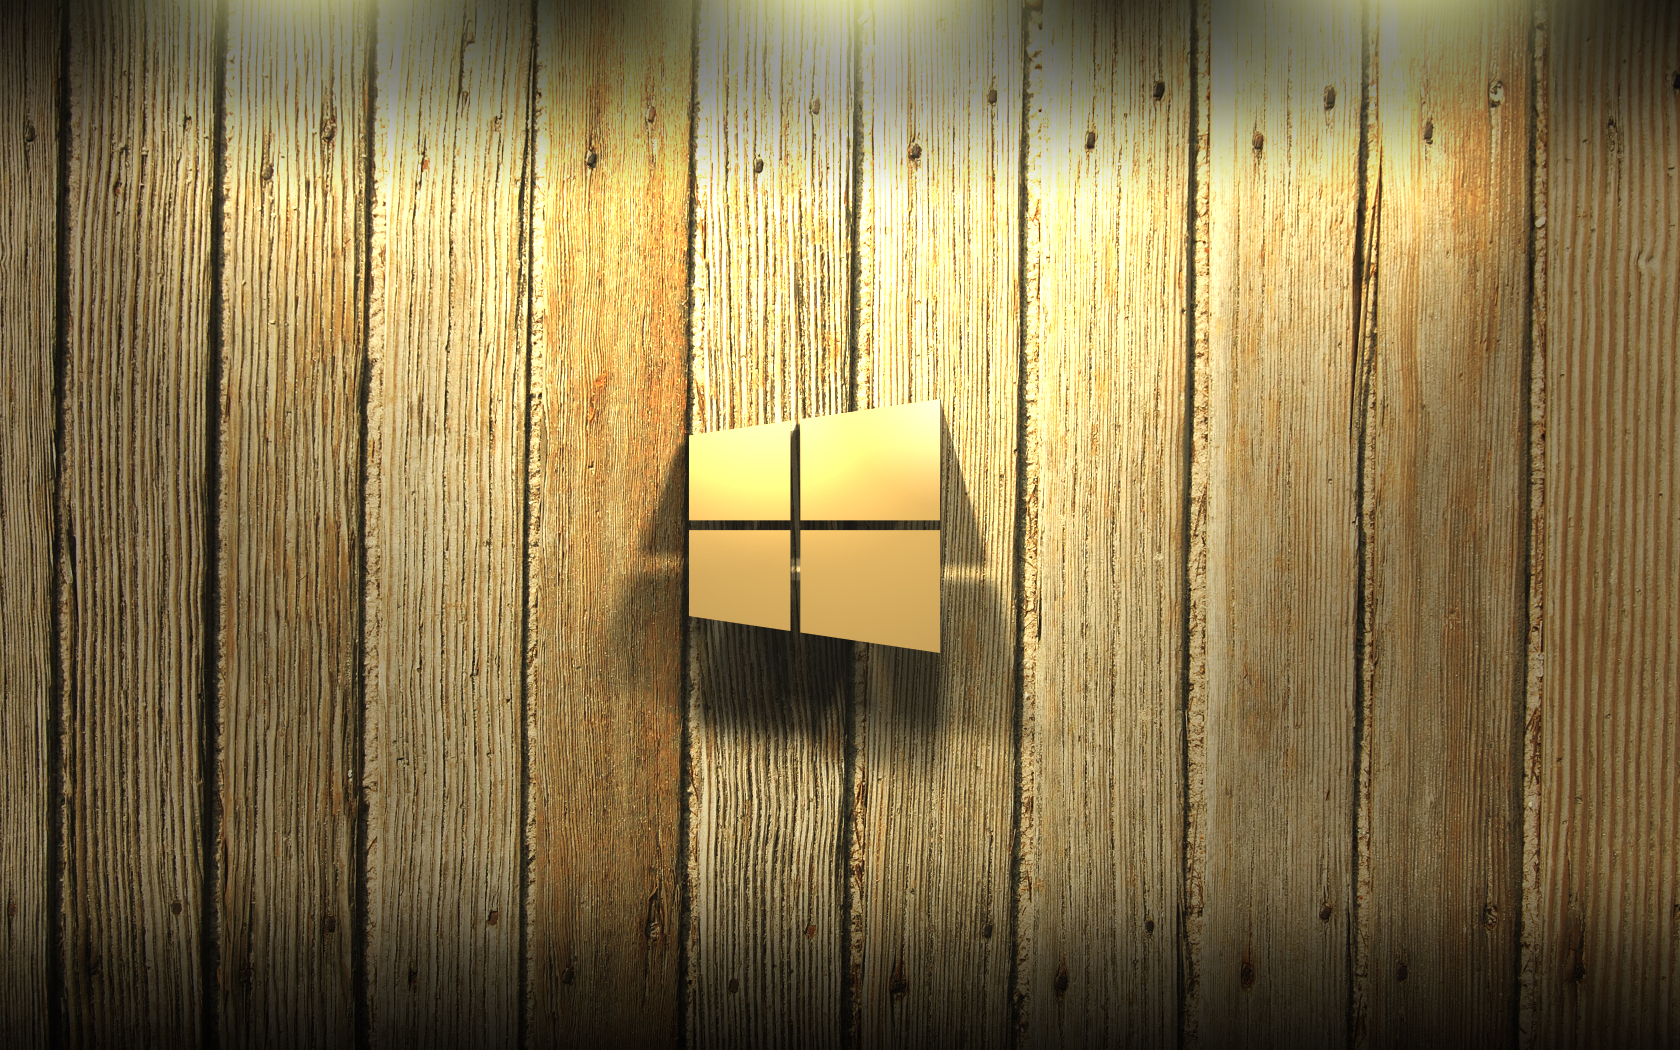 Windows 8 Wooden Panels by morphemedias